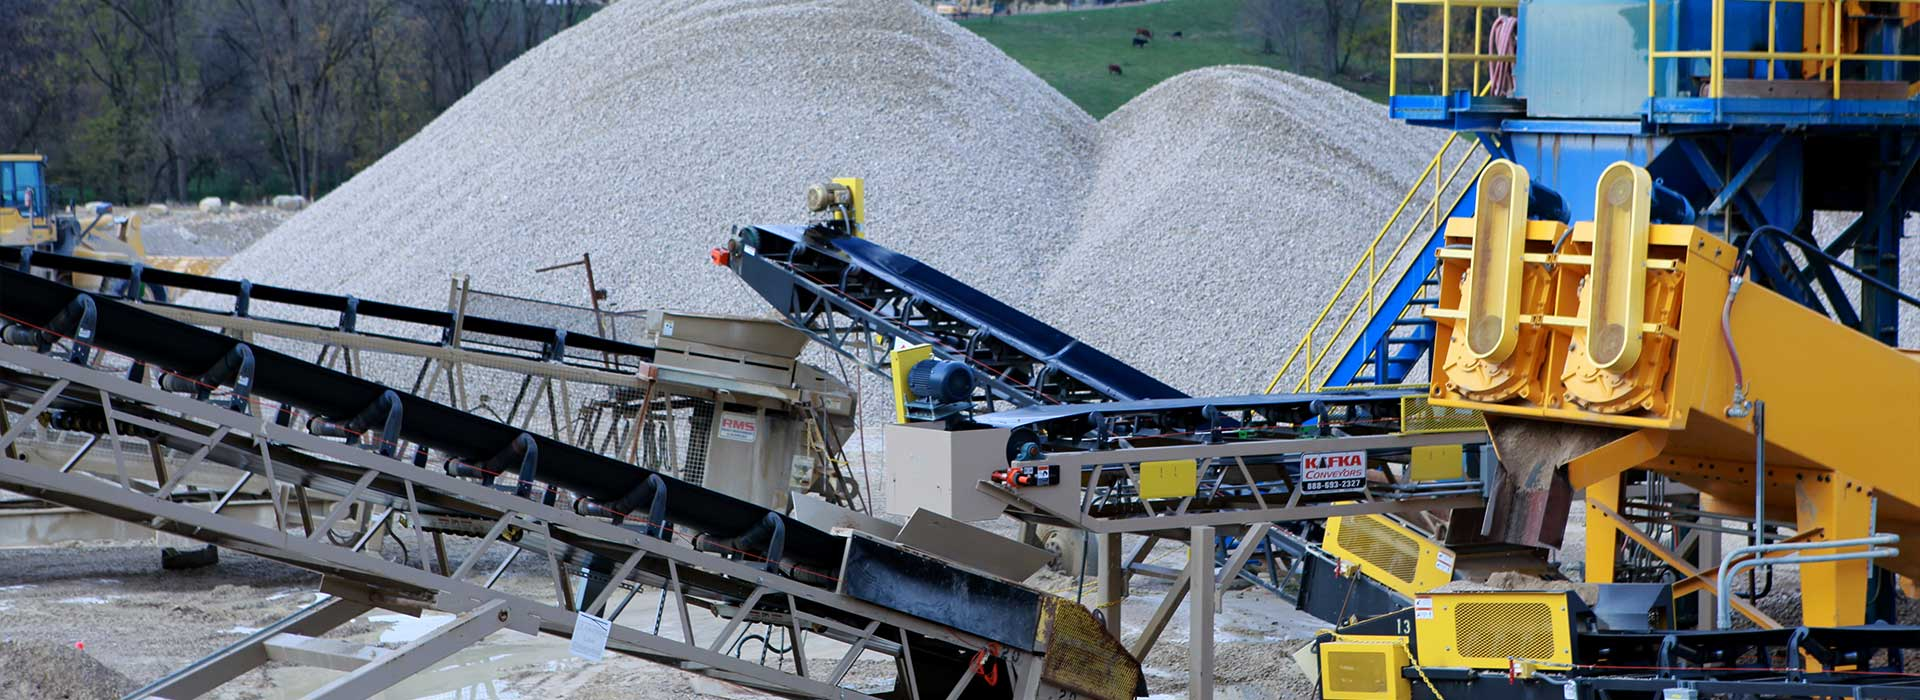 PSC Crushing Plant